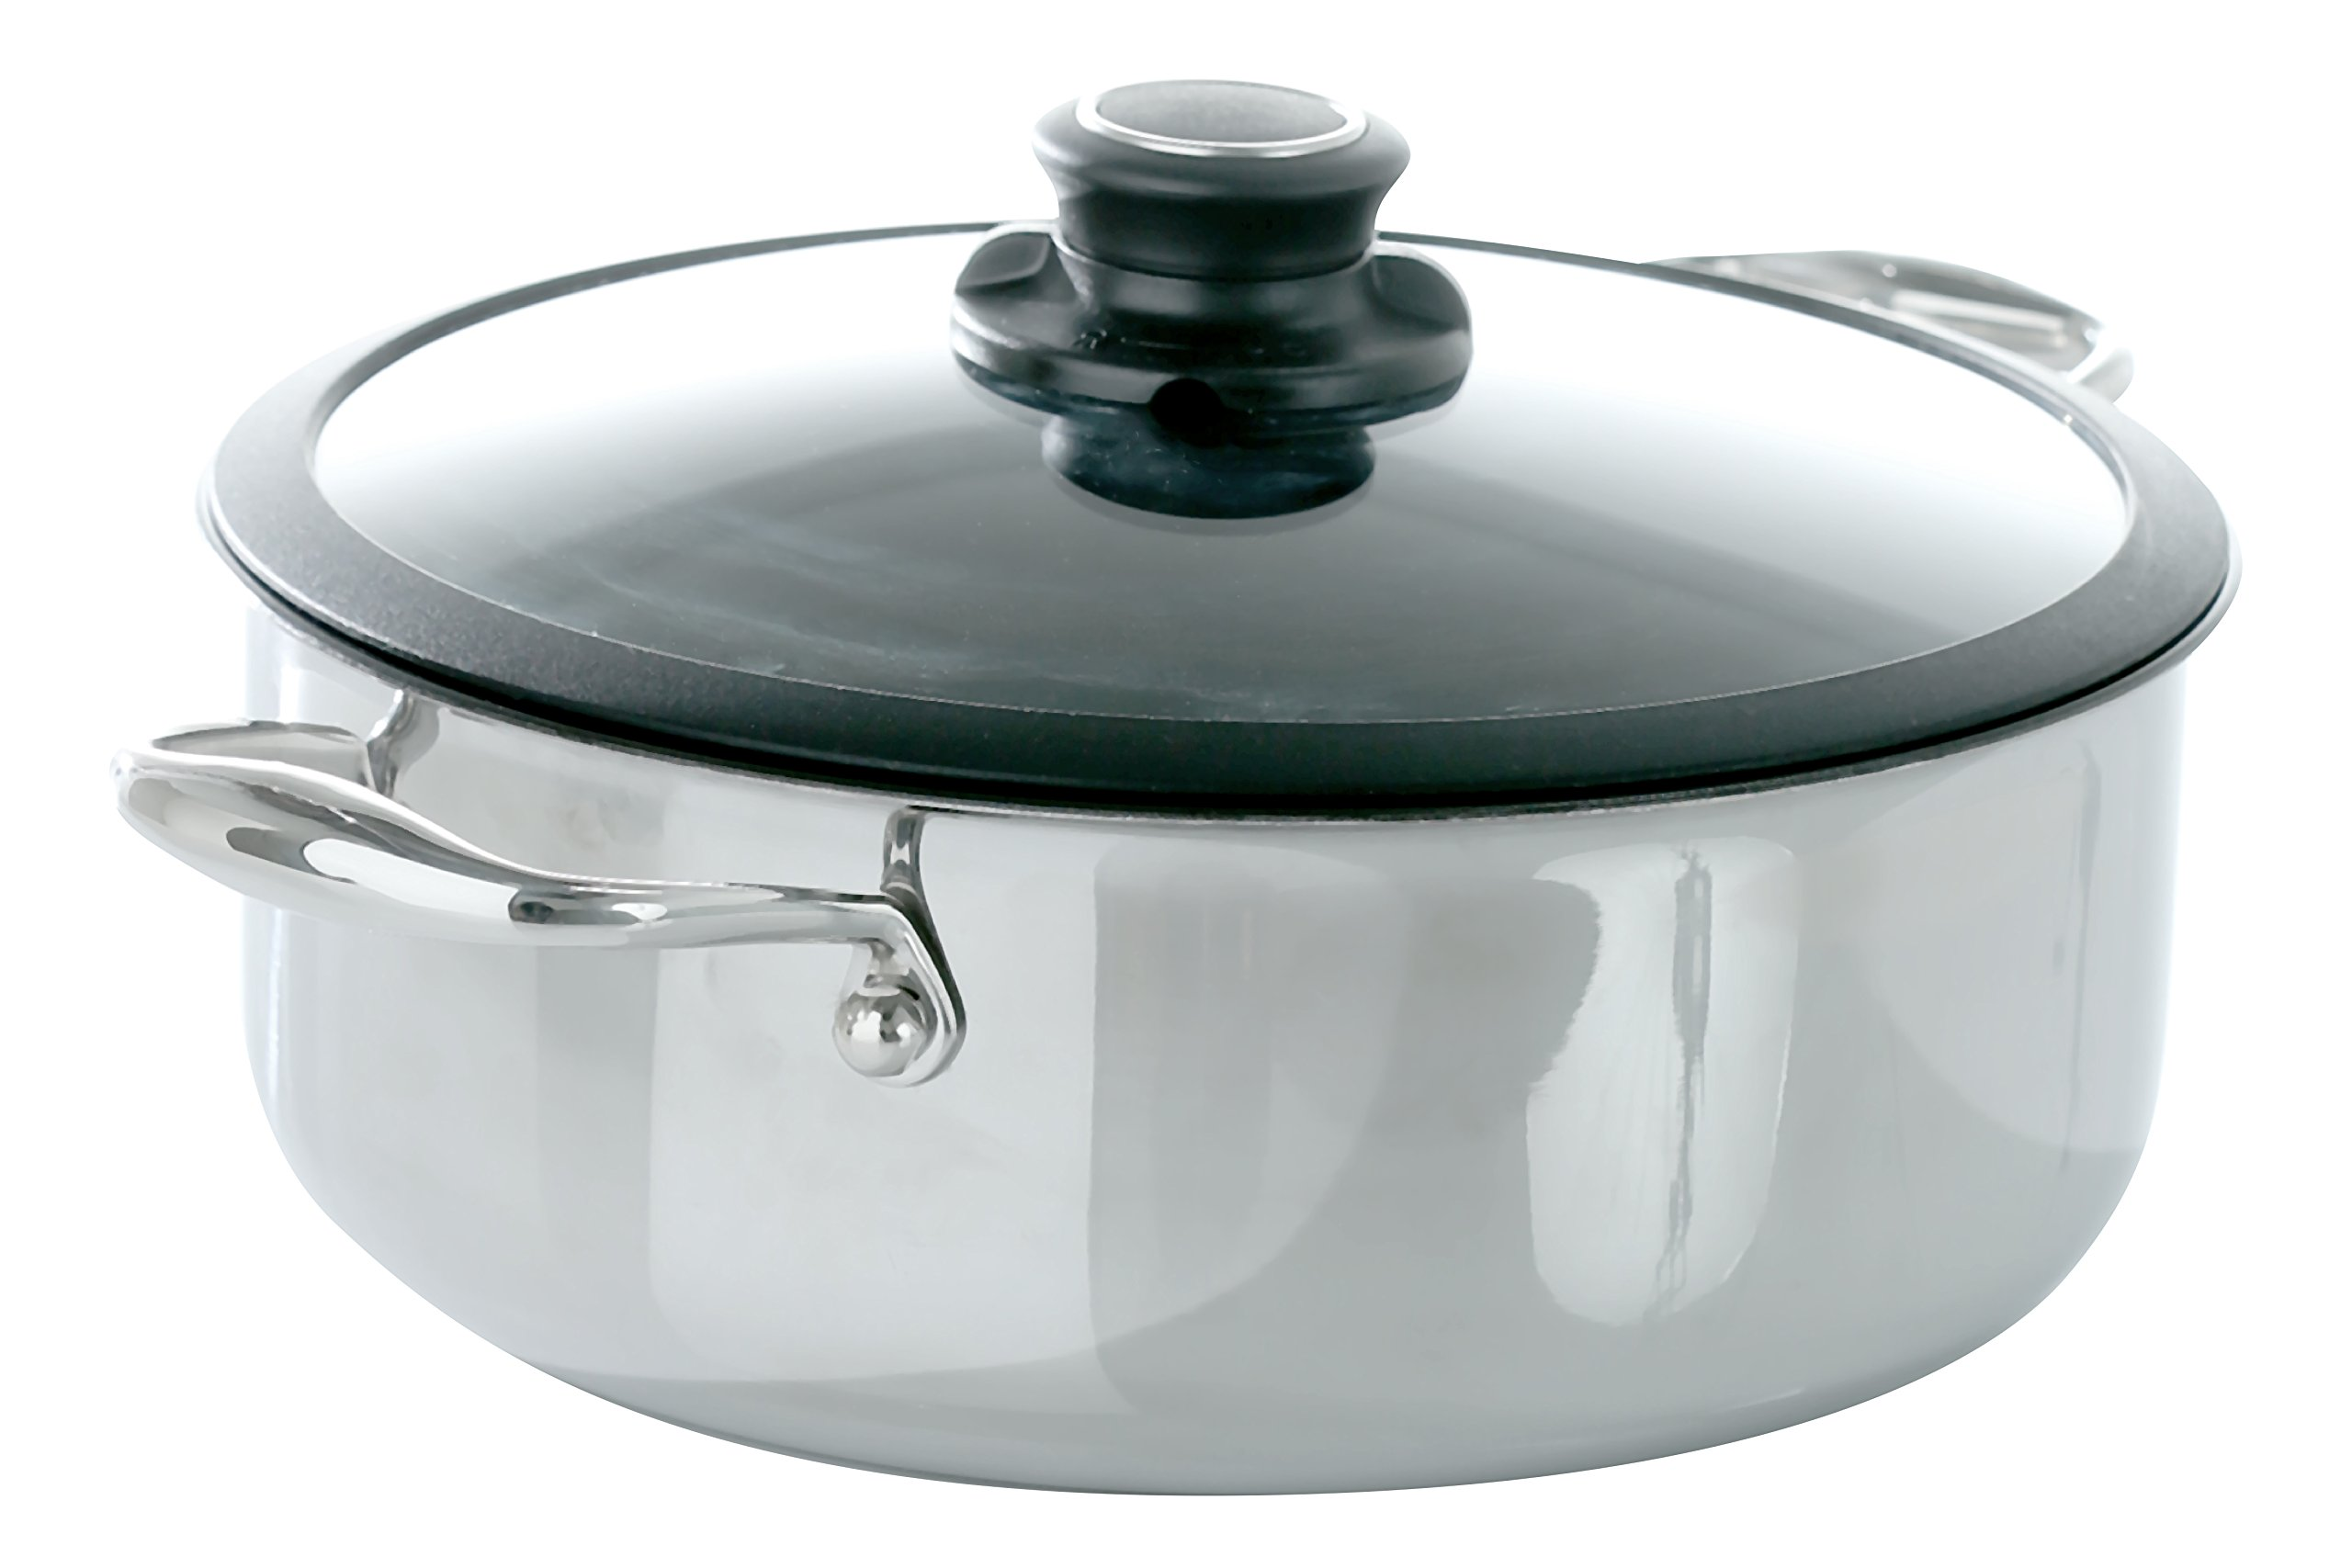 Frieling USA Black Cube Hybrid Stainless/Nonstick Cookware Casserole w/ Lid, 9 1/2-Inch Diameter, 4.0 Quart